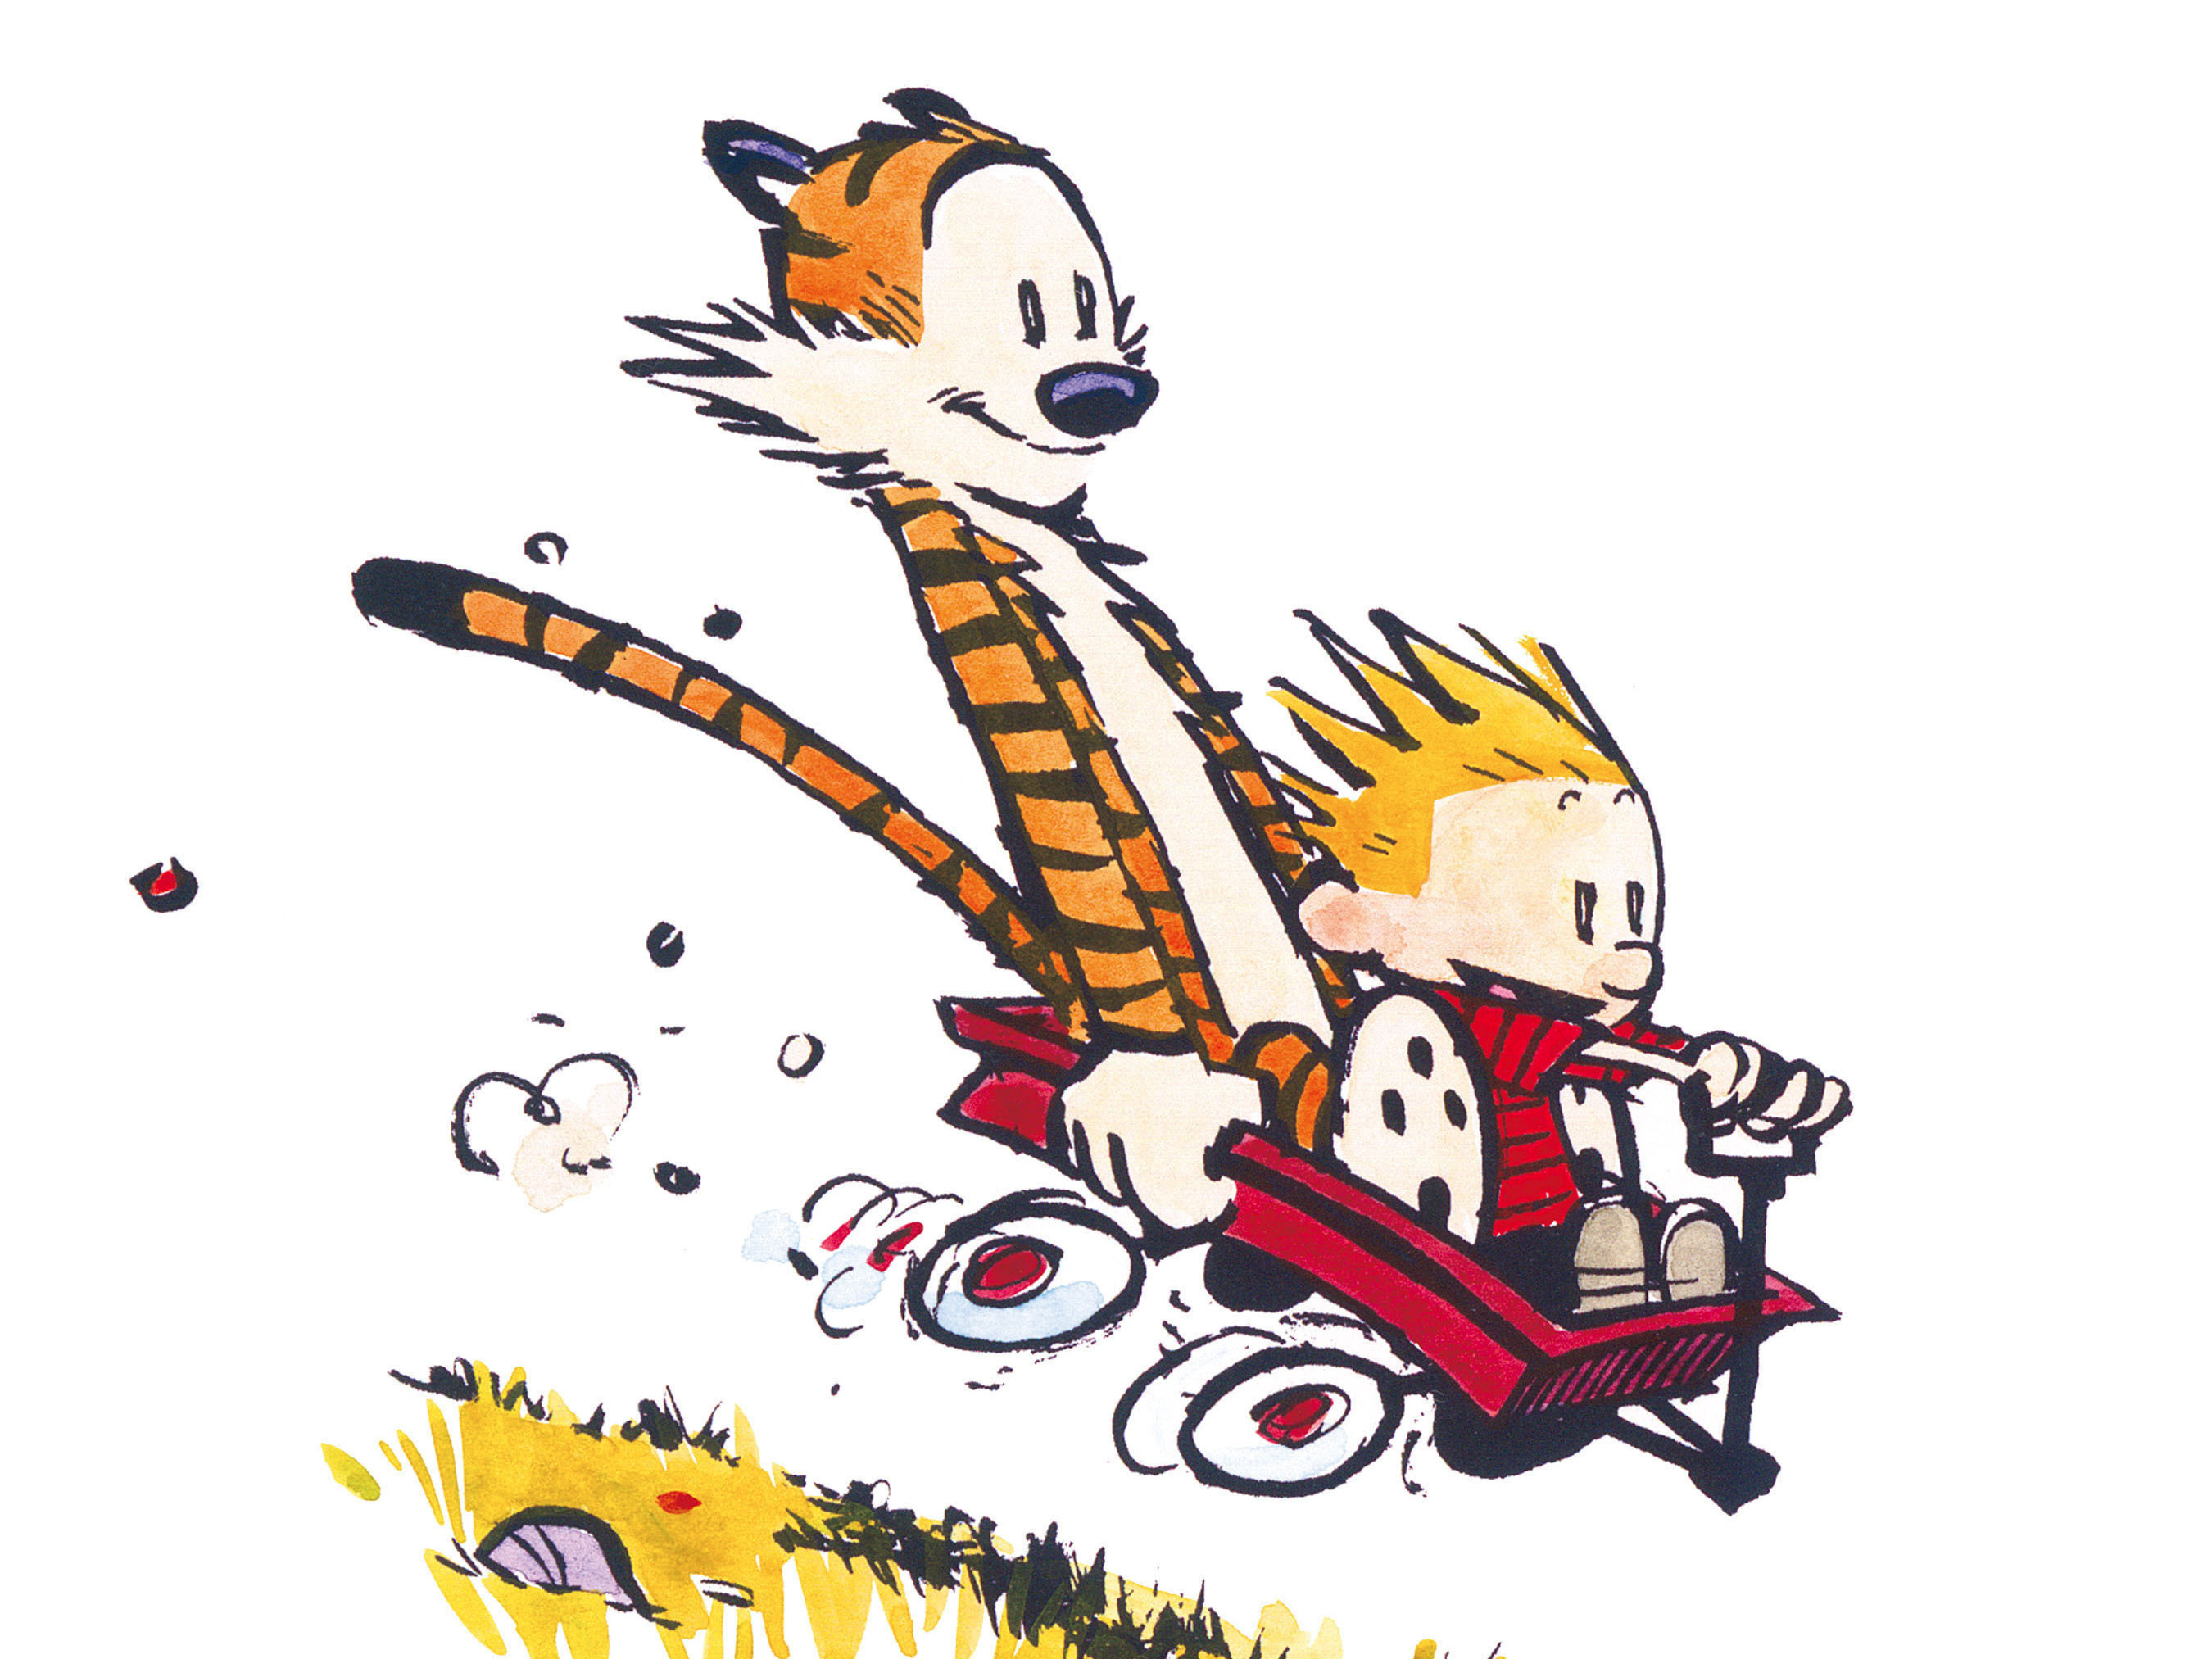 2700x2025 Calvin and Hobbes Calvin and Hobbes39 creator Bill Watterson Business  Insider